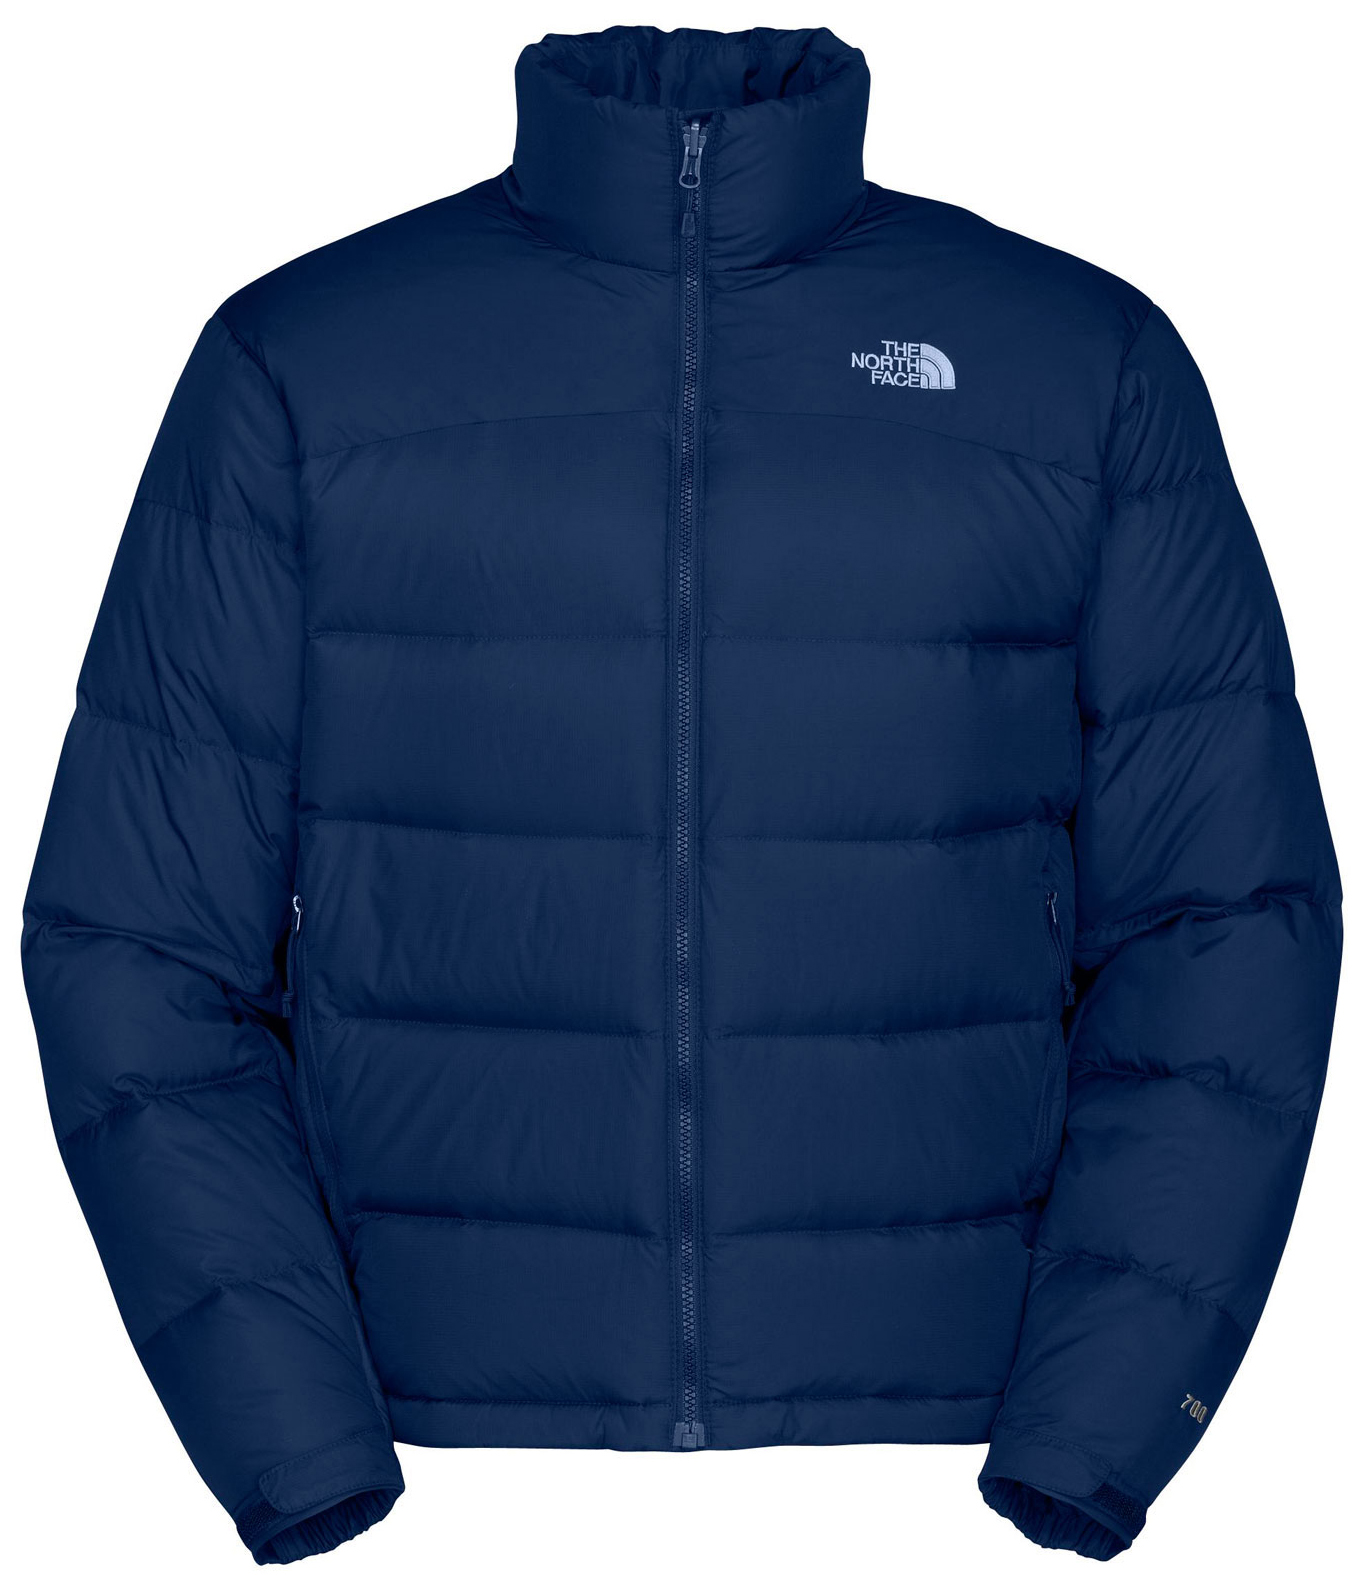 "Key Features of The North Face Nuptse 2 Jacket: Avg Weight: 690 g (24.4 oz) Center Back: 27.5"" Fabric: body: 50D 64 g/m2 (1.9 oz/yd2) mini-ripstop weave nylon abrasion: 50D 64 g/m2 (1.9 oz/yd2) plain weave nylon with DWR insulation: 700 fill goose down The North Face classic, high loft down jacket that delivers plush warmth in harsh cold. Standard fit Zip-in compatible Taffeta emergency hood Double-layer taffeta on shoulders Stows in hand pocket Two hand pockets Elastic cuff Hem cinch-cord - $164.95"